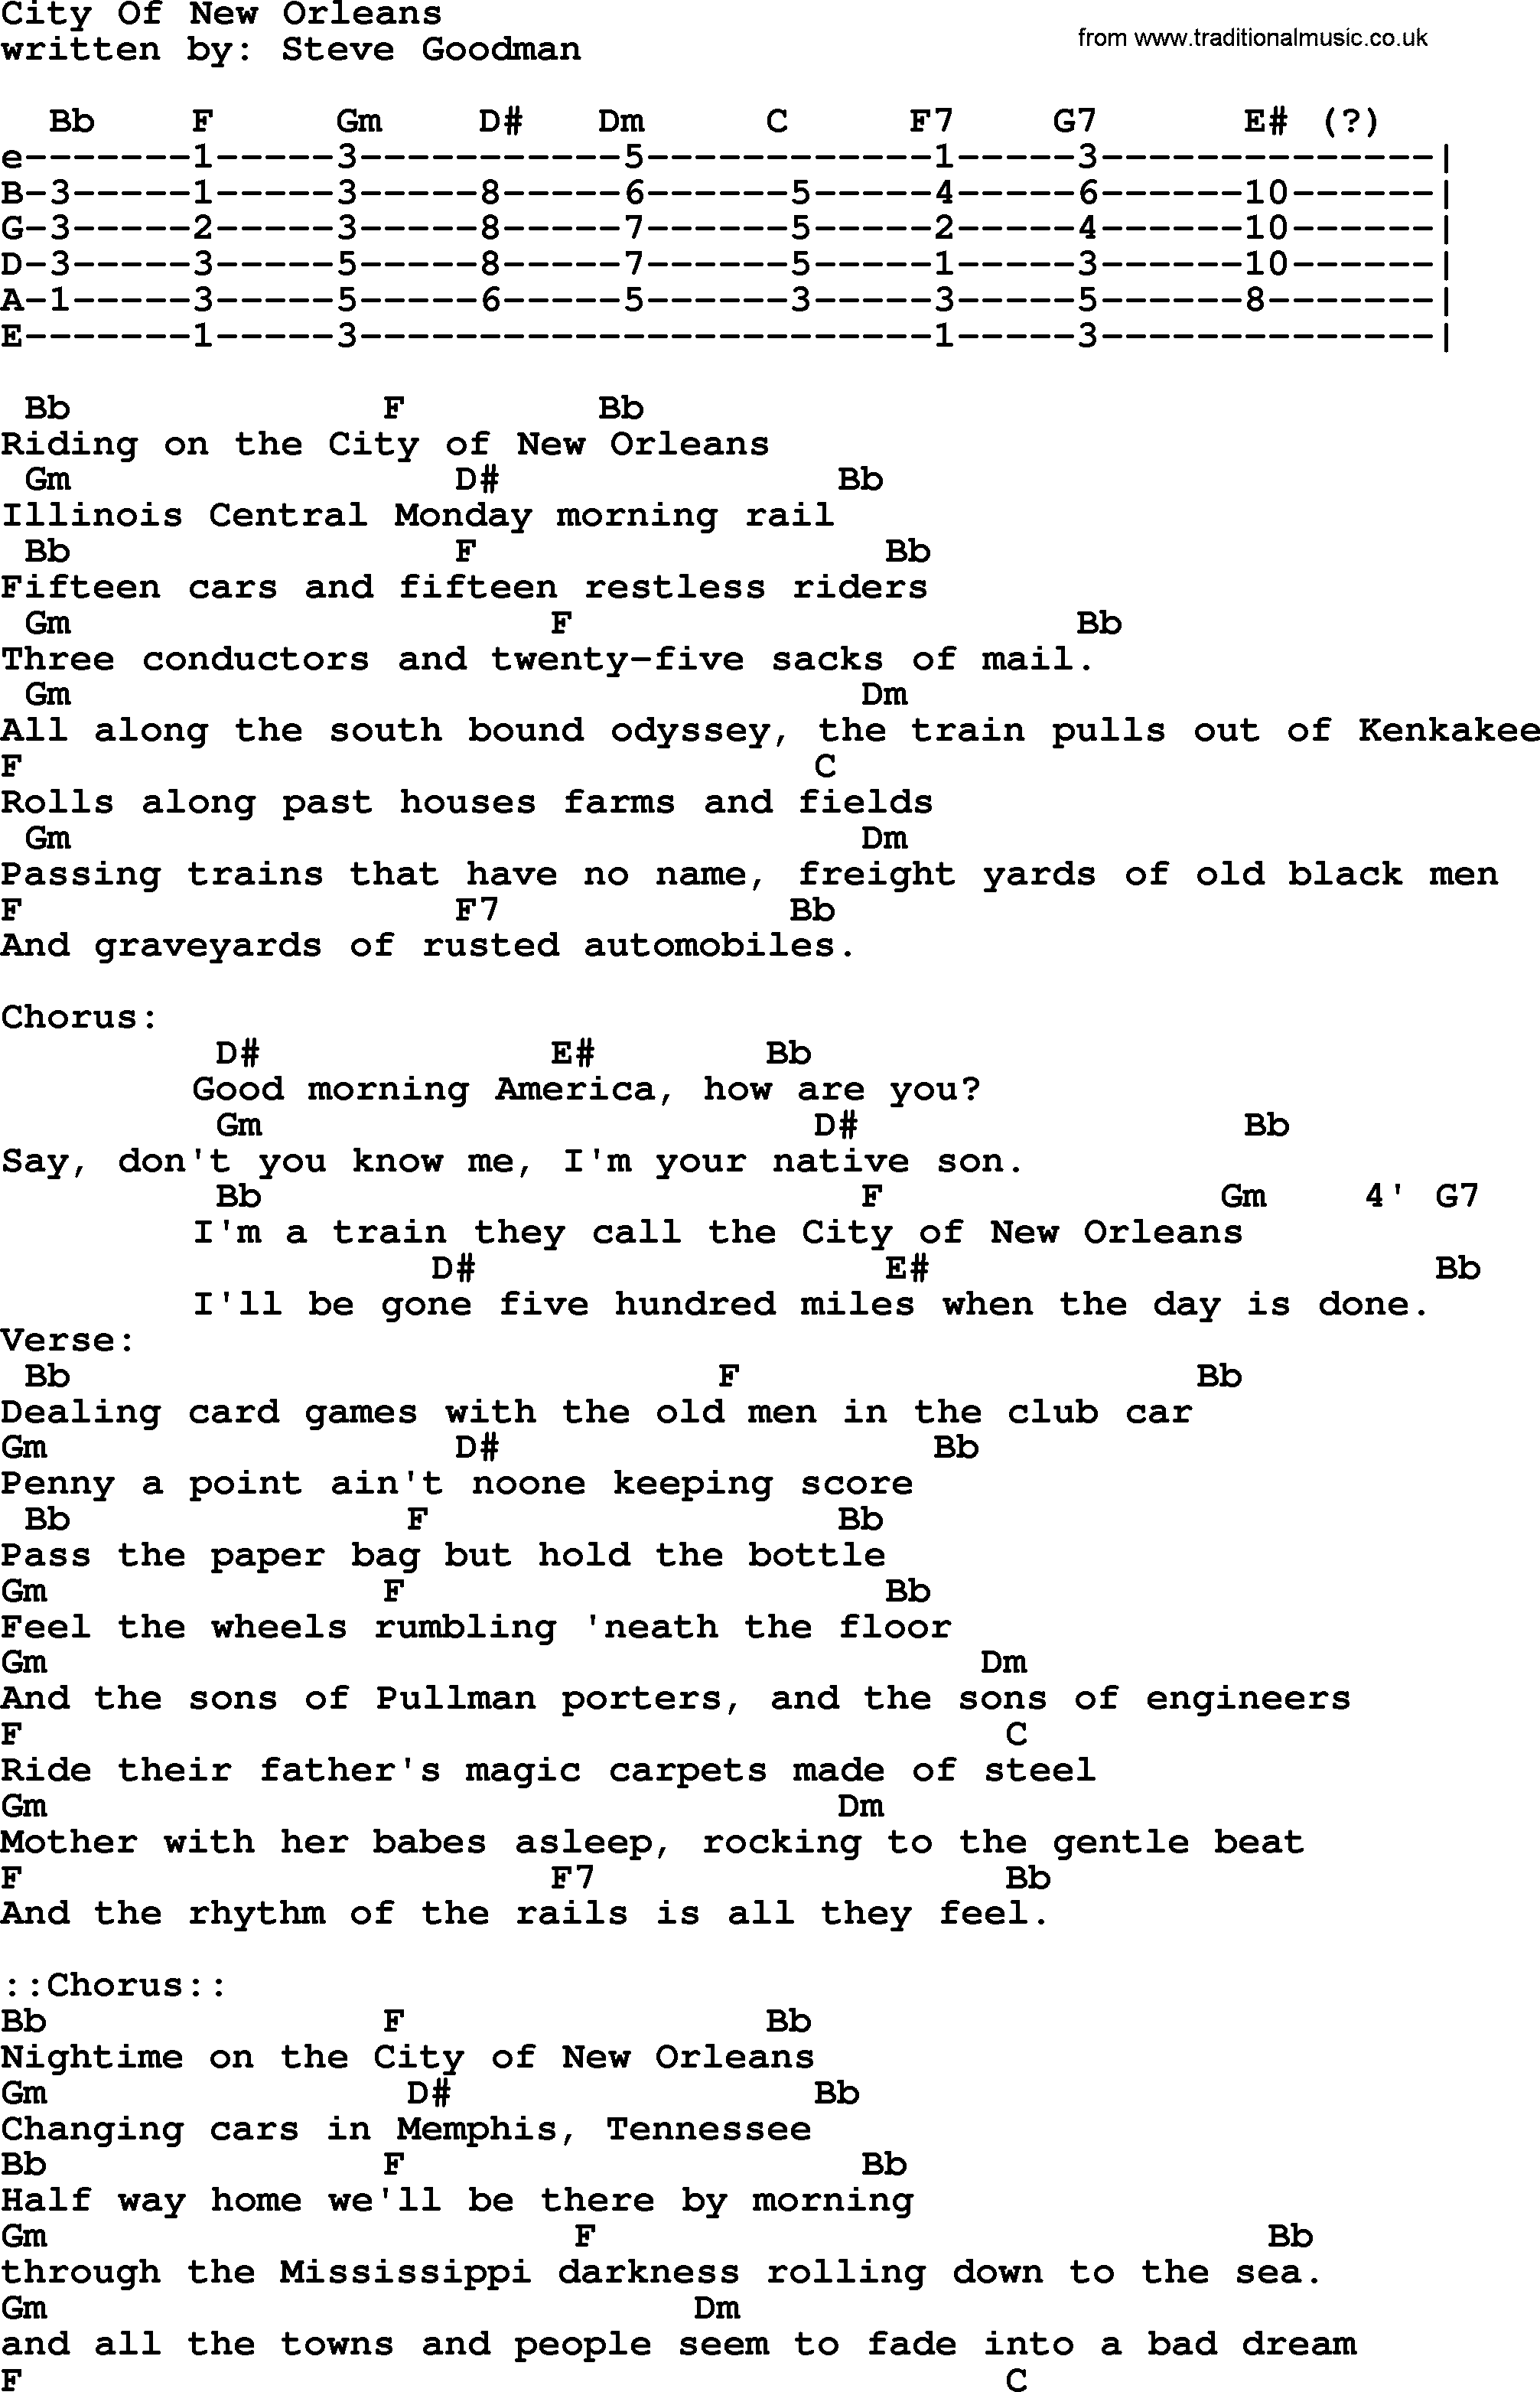 Johnny Cash song City Of New Orleans, lyrics and chords